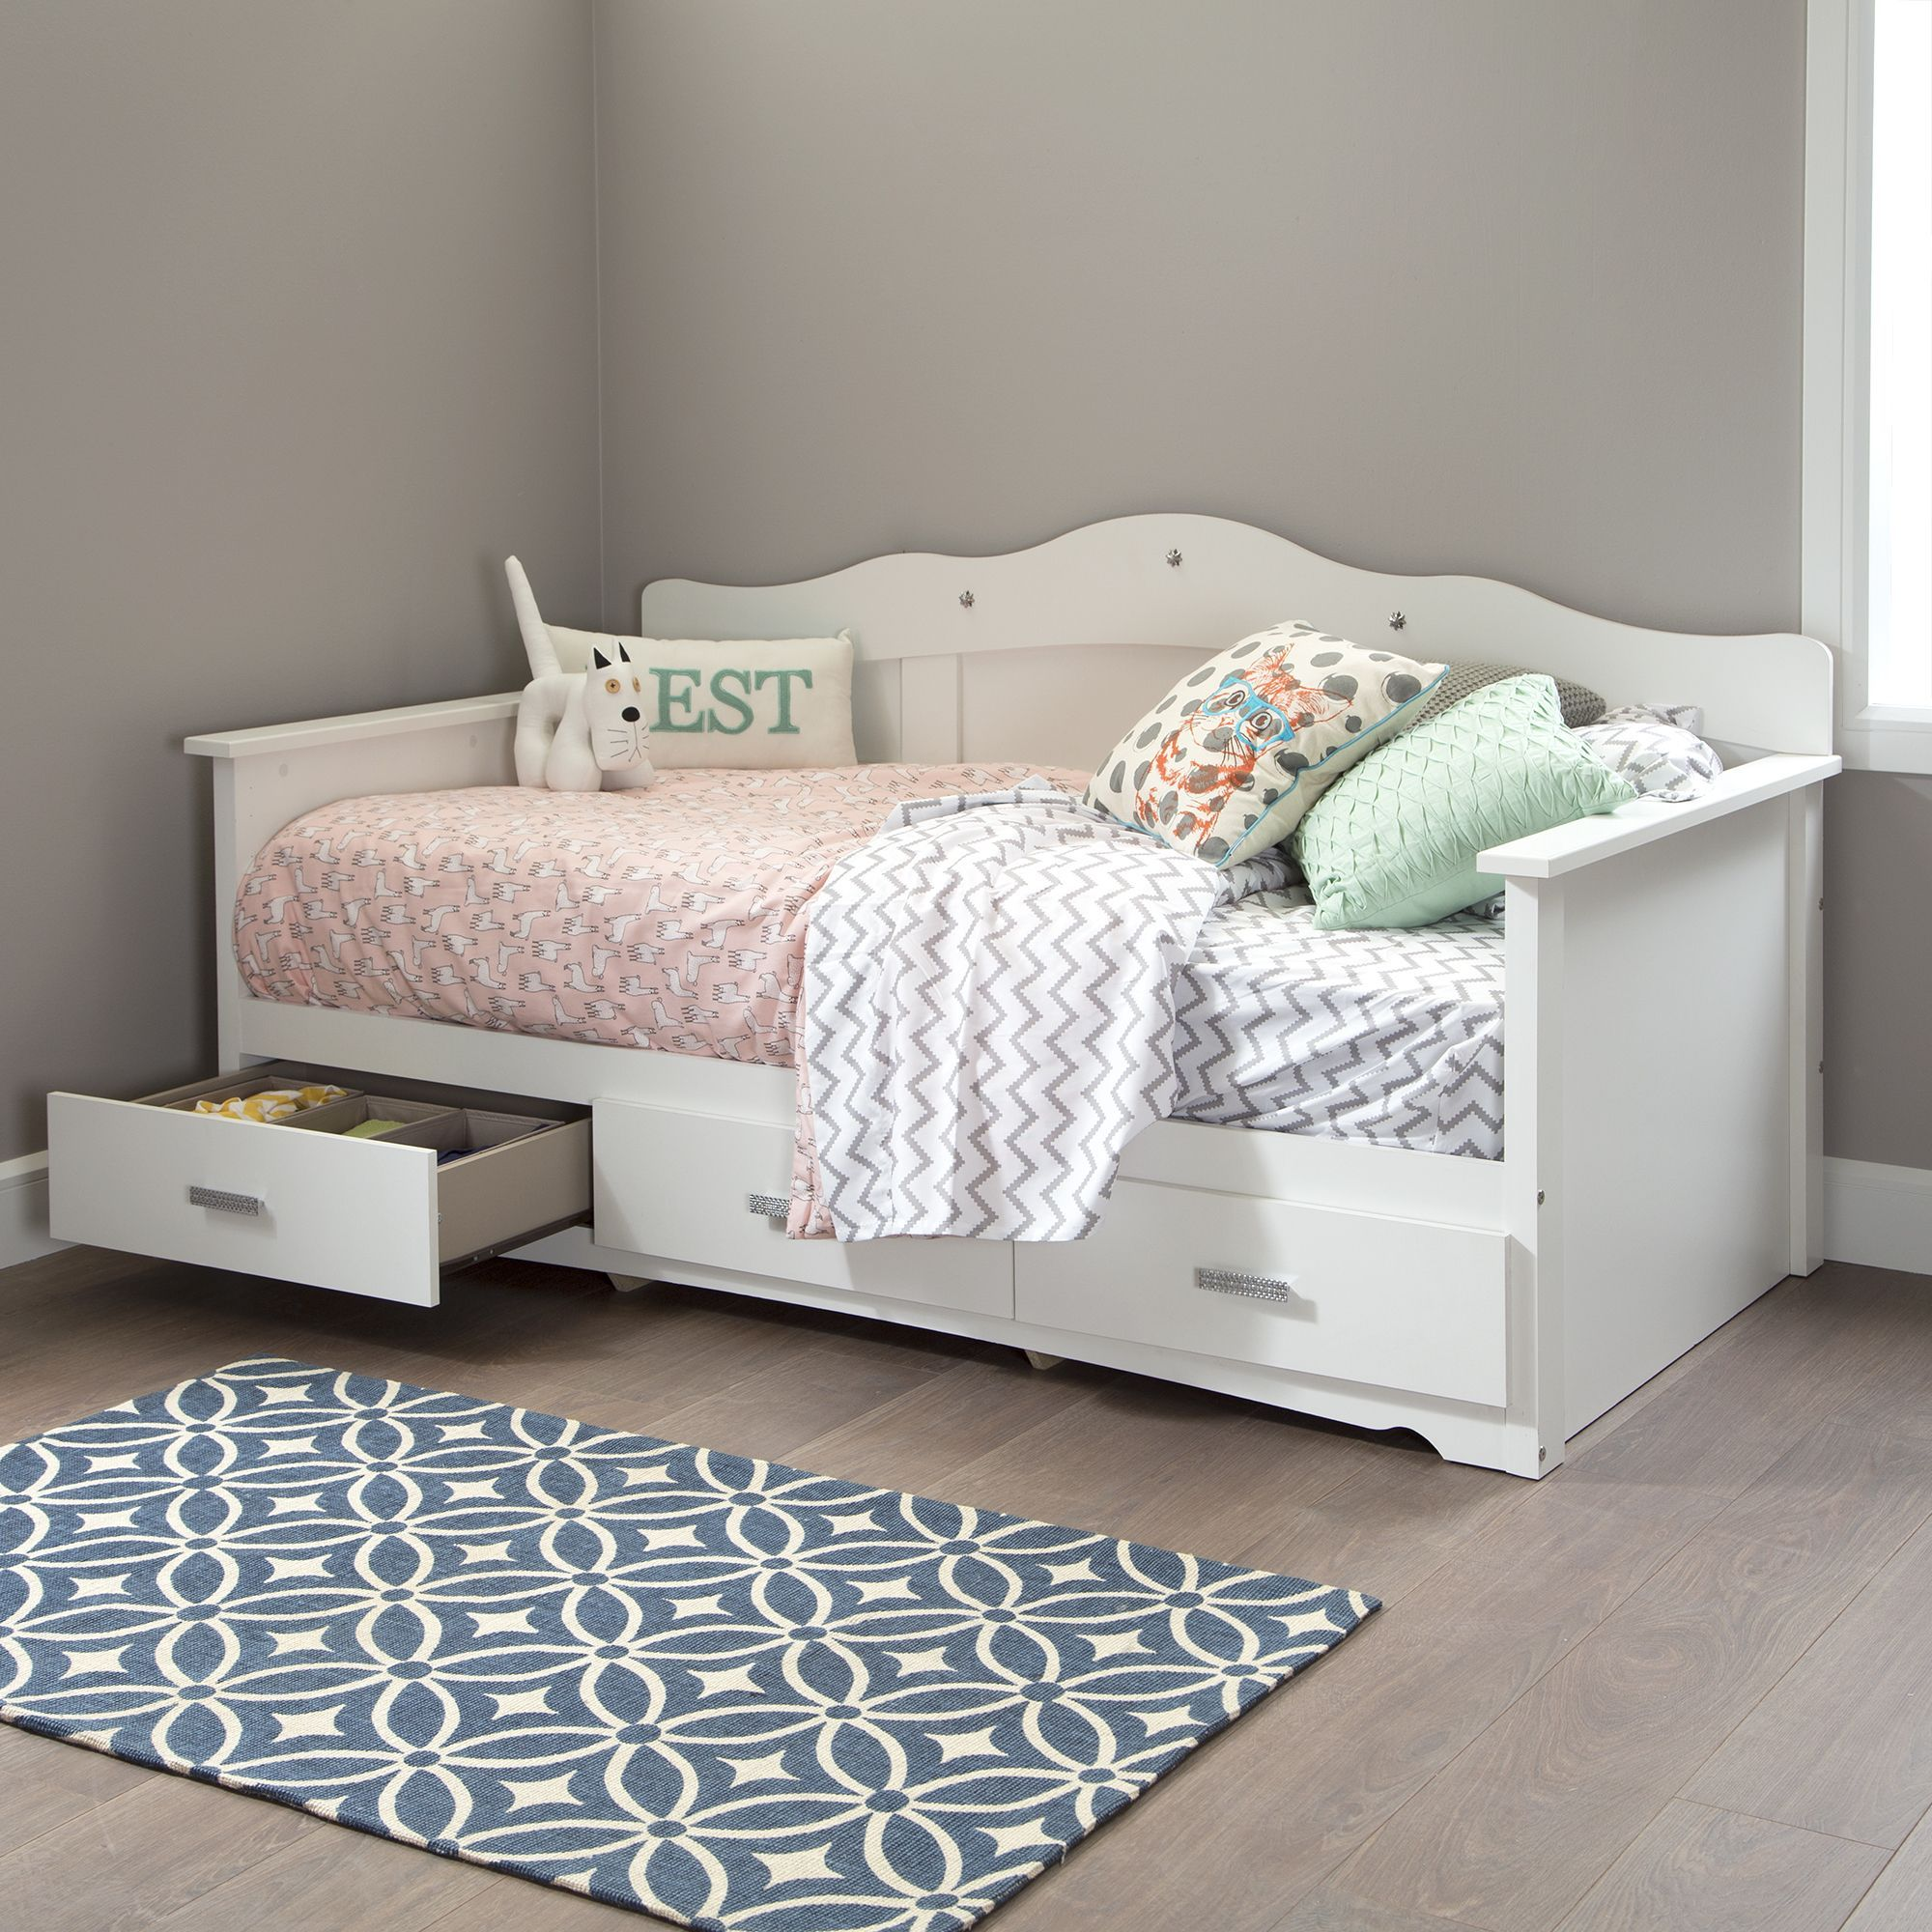 with up drawers espresso dorel morgan kitchen storage size design daybed living ideas super trundle full amazon for ikea bedding wayfair bed projects inspiration sized daybeds frame pop com